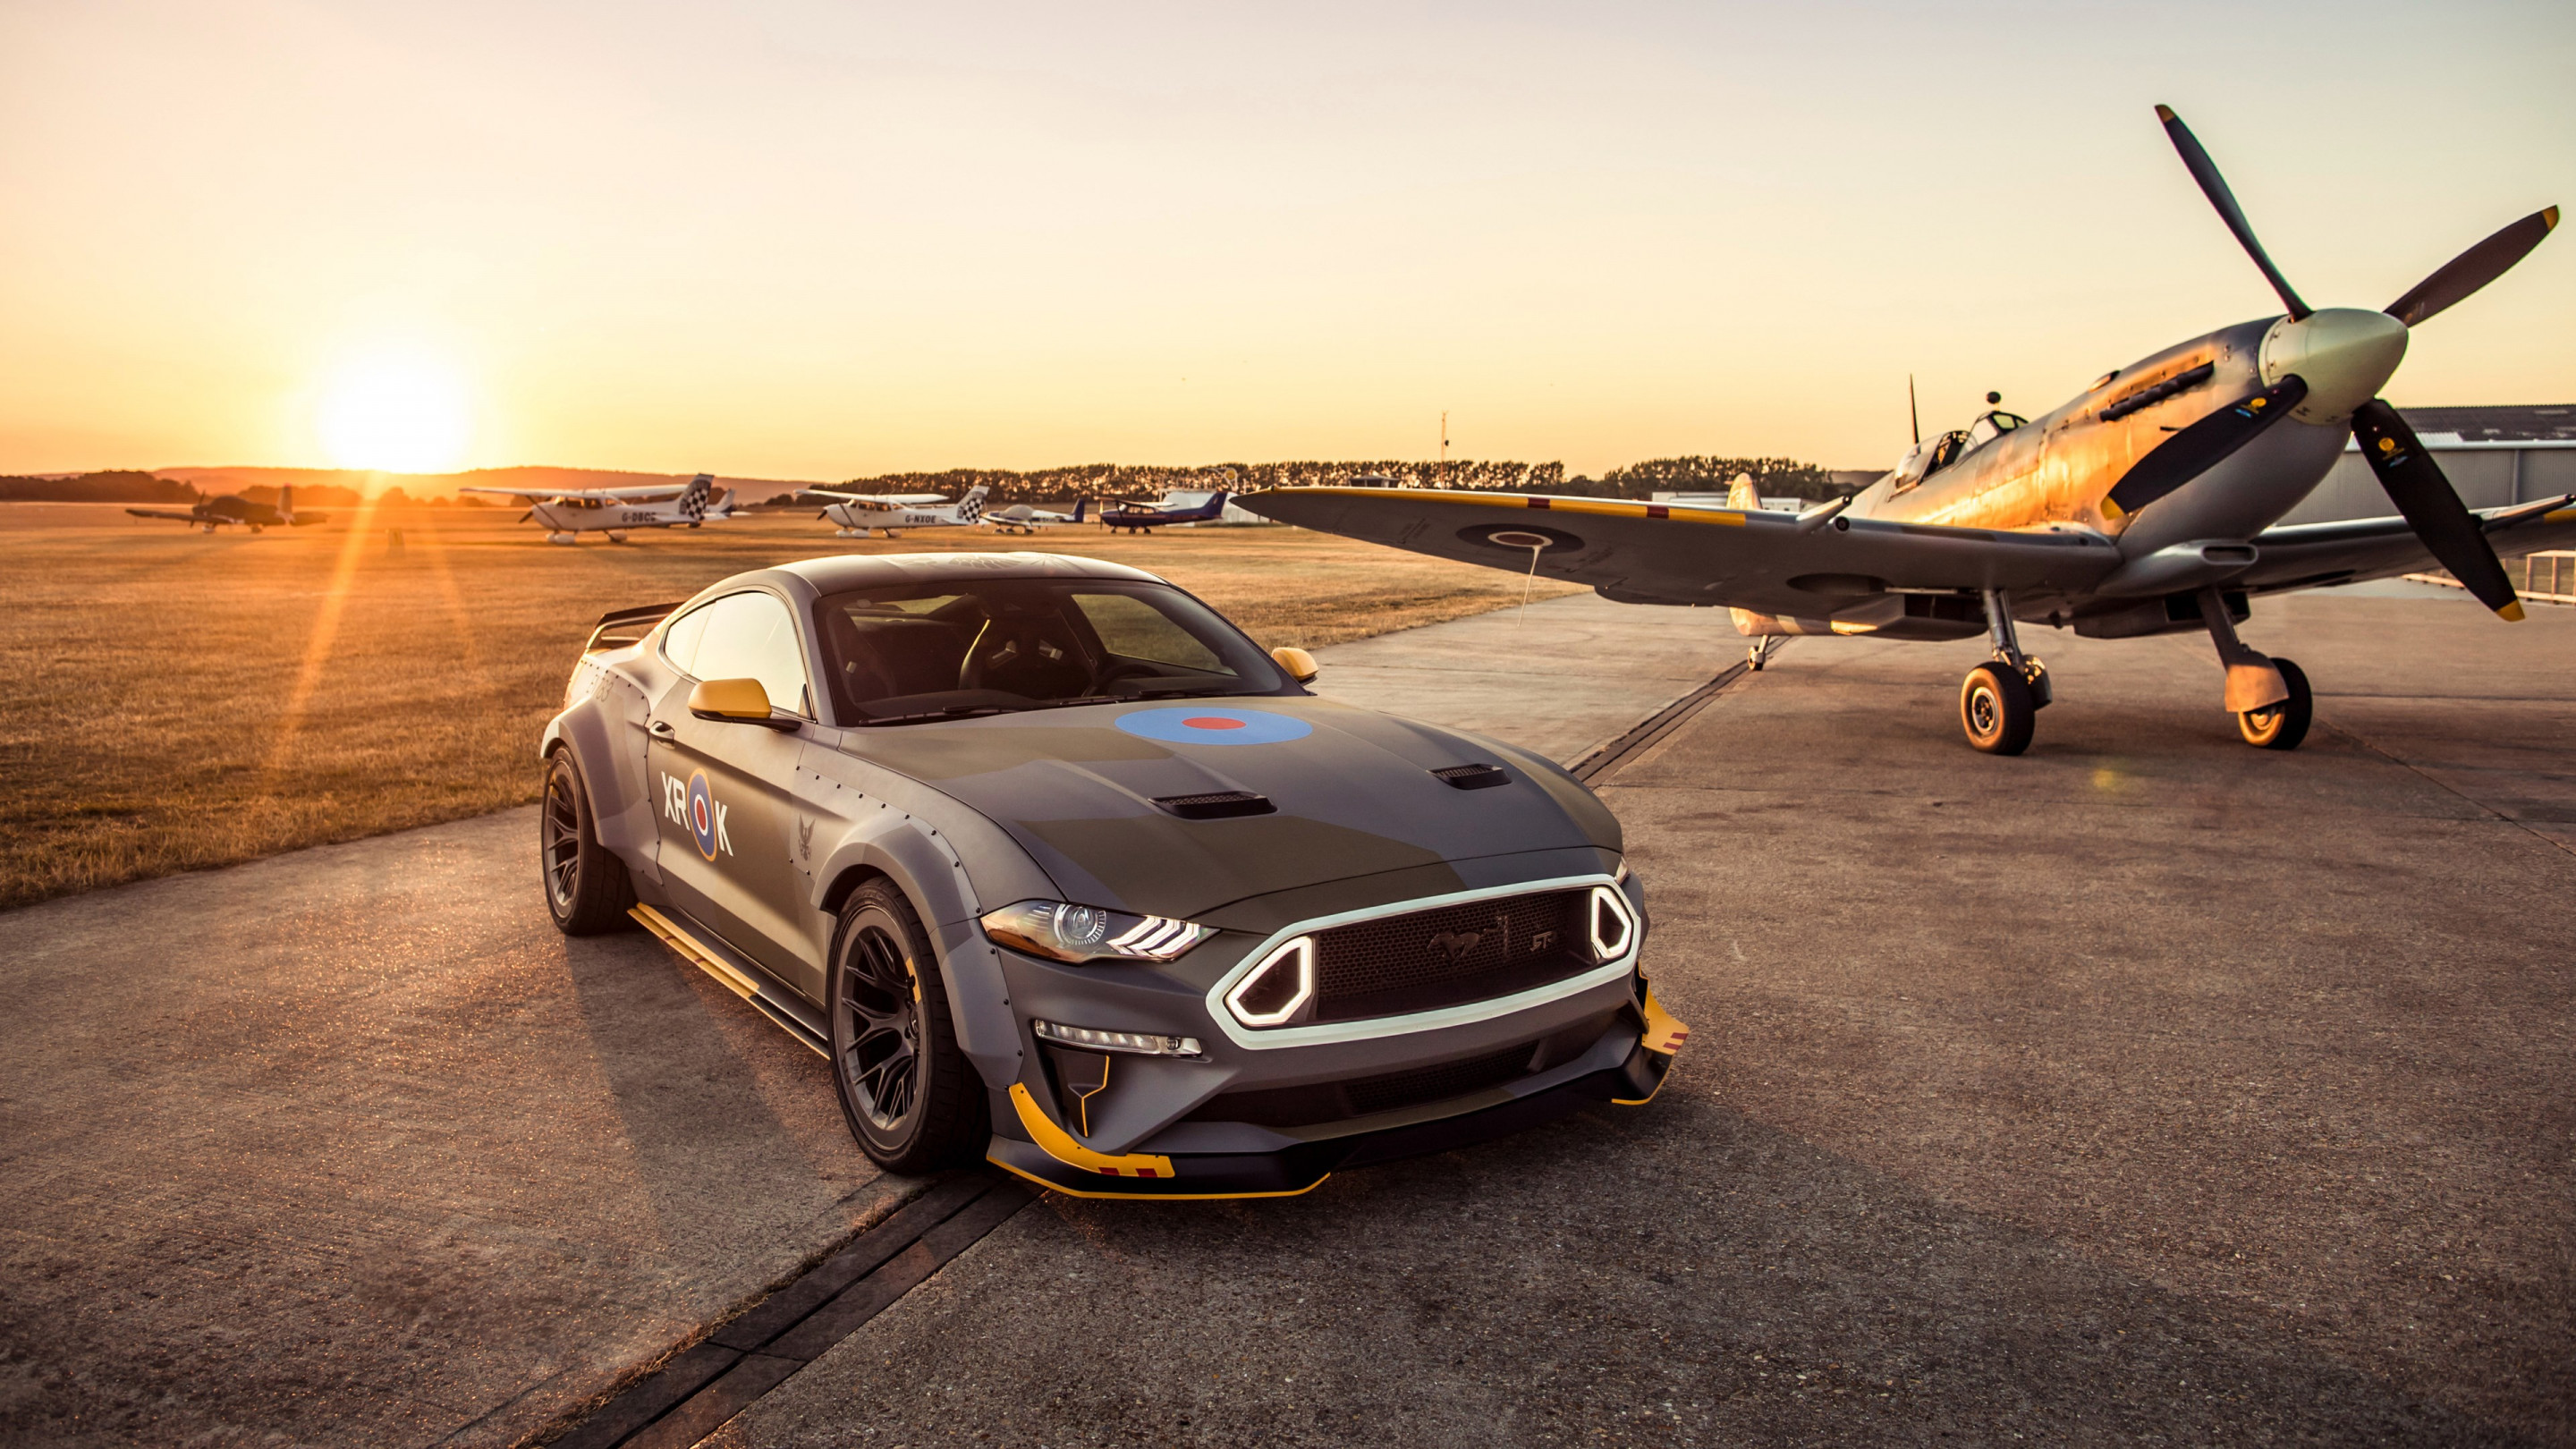 Ford Eagle Squadron Mustang GT | 2880x1620 wallpaper